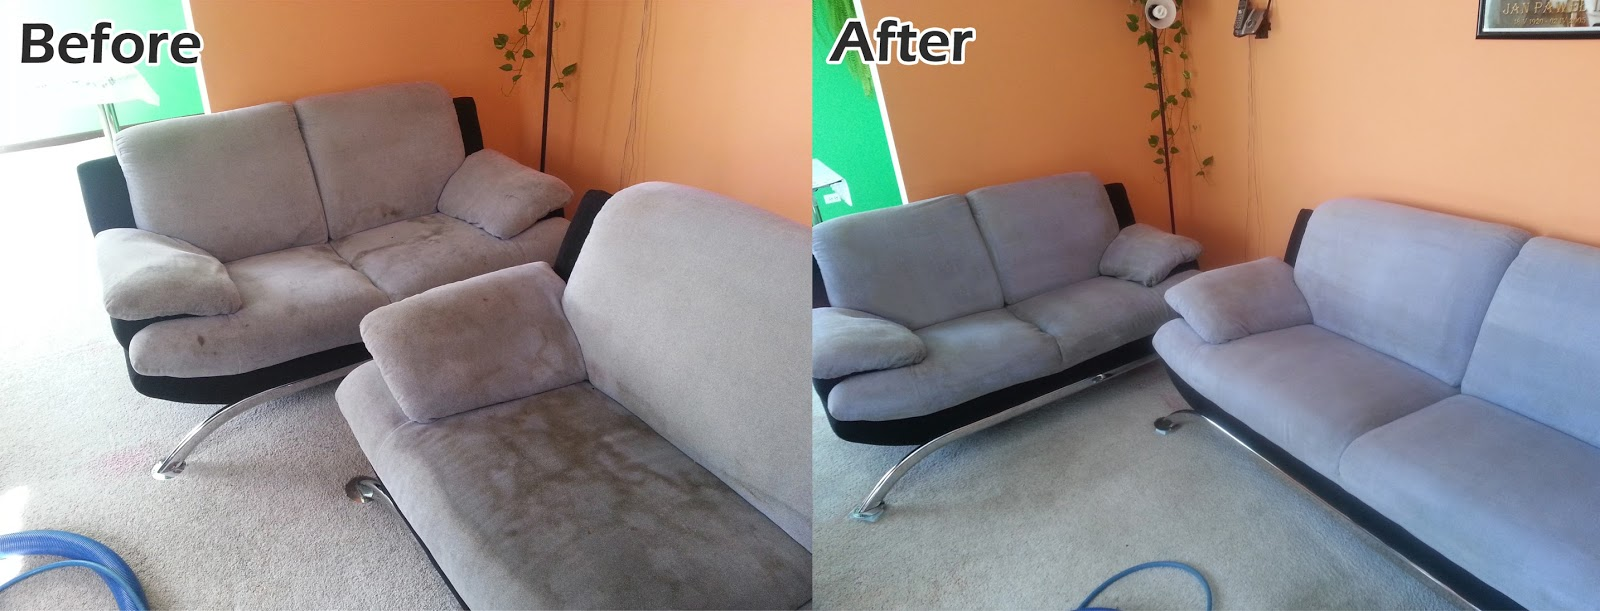 Professional Dry Cleaning Of Sofa And Upholstery